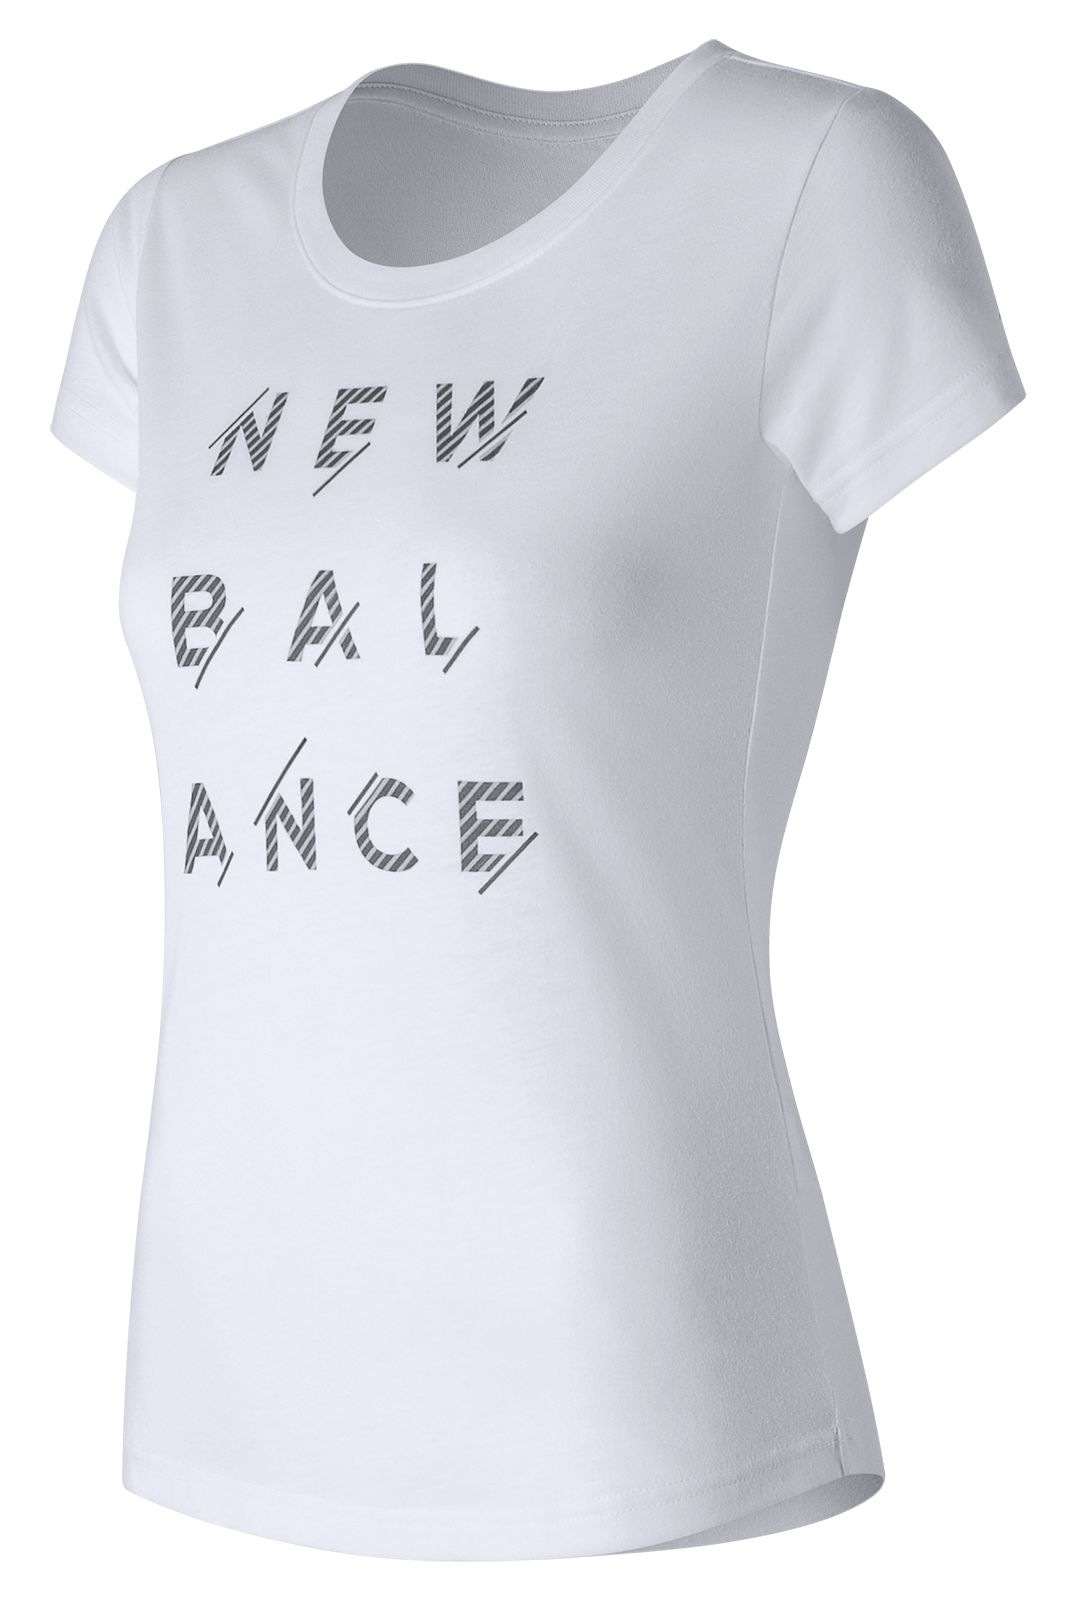 New Balance : Sport Style Tee : Women's Casual : WT71568WT